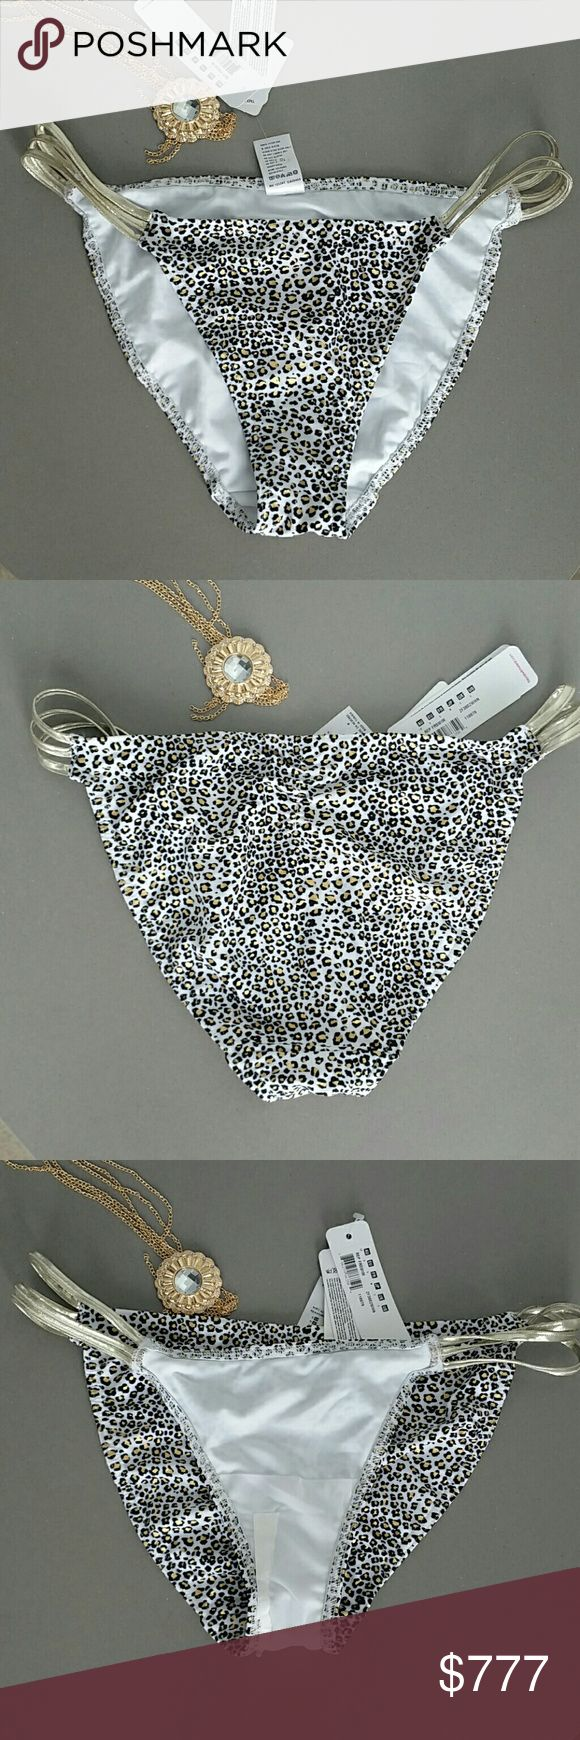 Wildside animal print bikini bottoms Brand new with tags   FREYA animal print bikini bottoms with metallic straps on sides. Colors are white gold and black.   Matching bikini top in 30G also available in my closet.  US size small (they run big in my opinion))   Vegas poolside beach party swimsuit swimwear bikini top poolside cruise vacation Freya Swim Bikinis